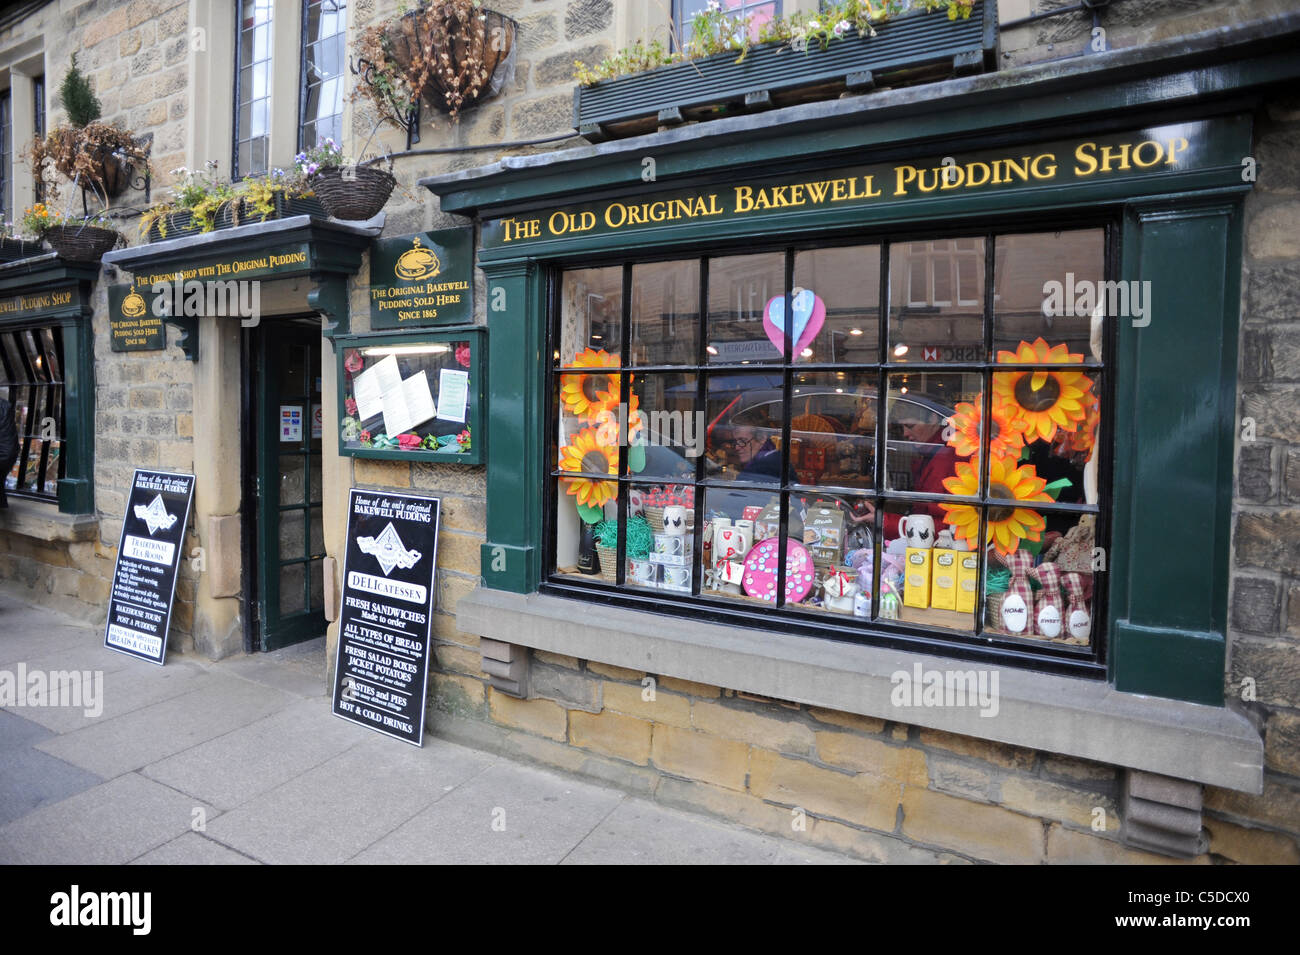 The Old Original Bakewell Pudding Shop one of many shops in Bakewell selling 'original' puddings - Stock Image